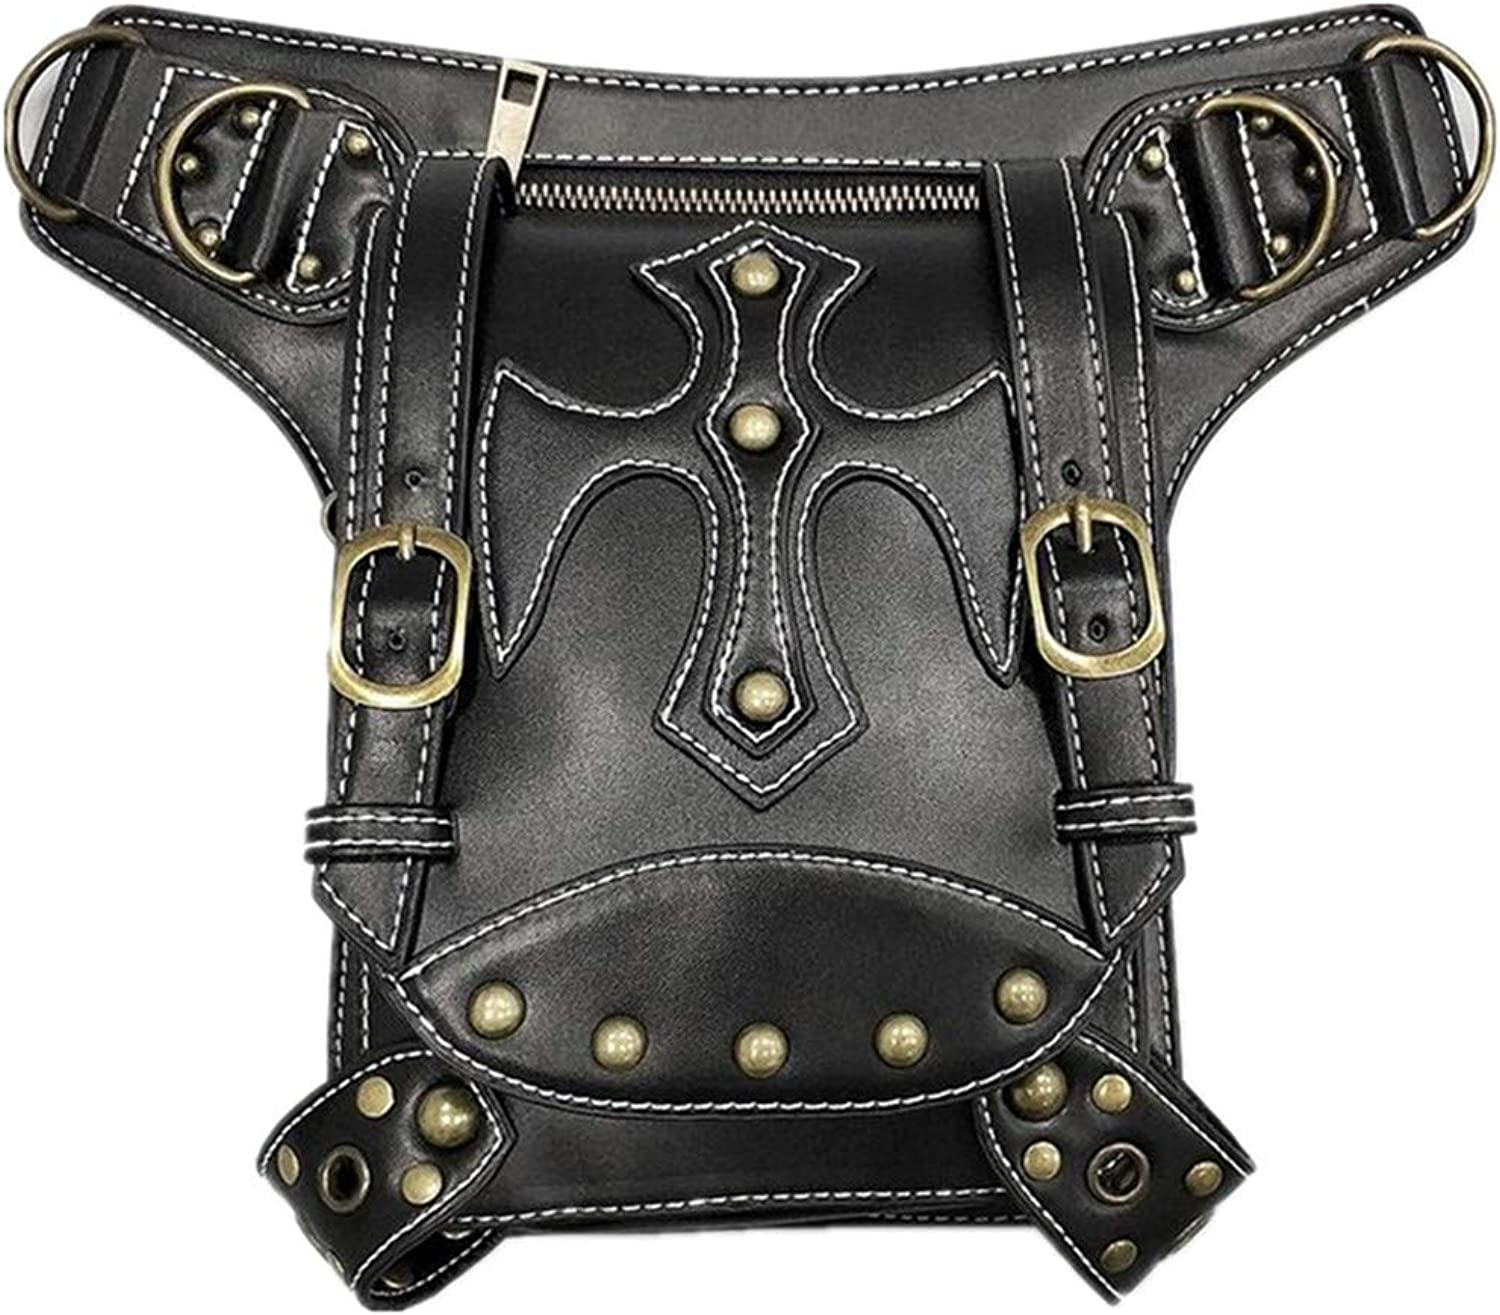 Punk theme Women's Europe and America Steampunk Retro Shoulder Bag Diagonal Pockets